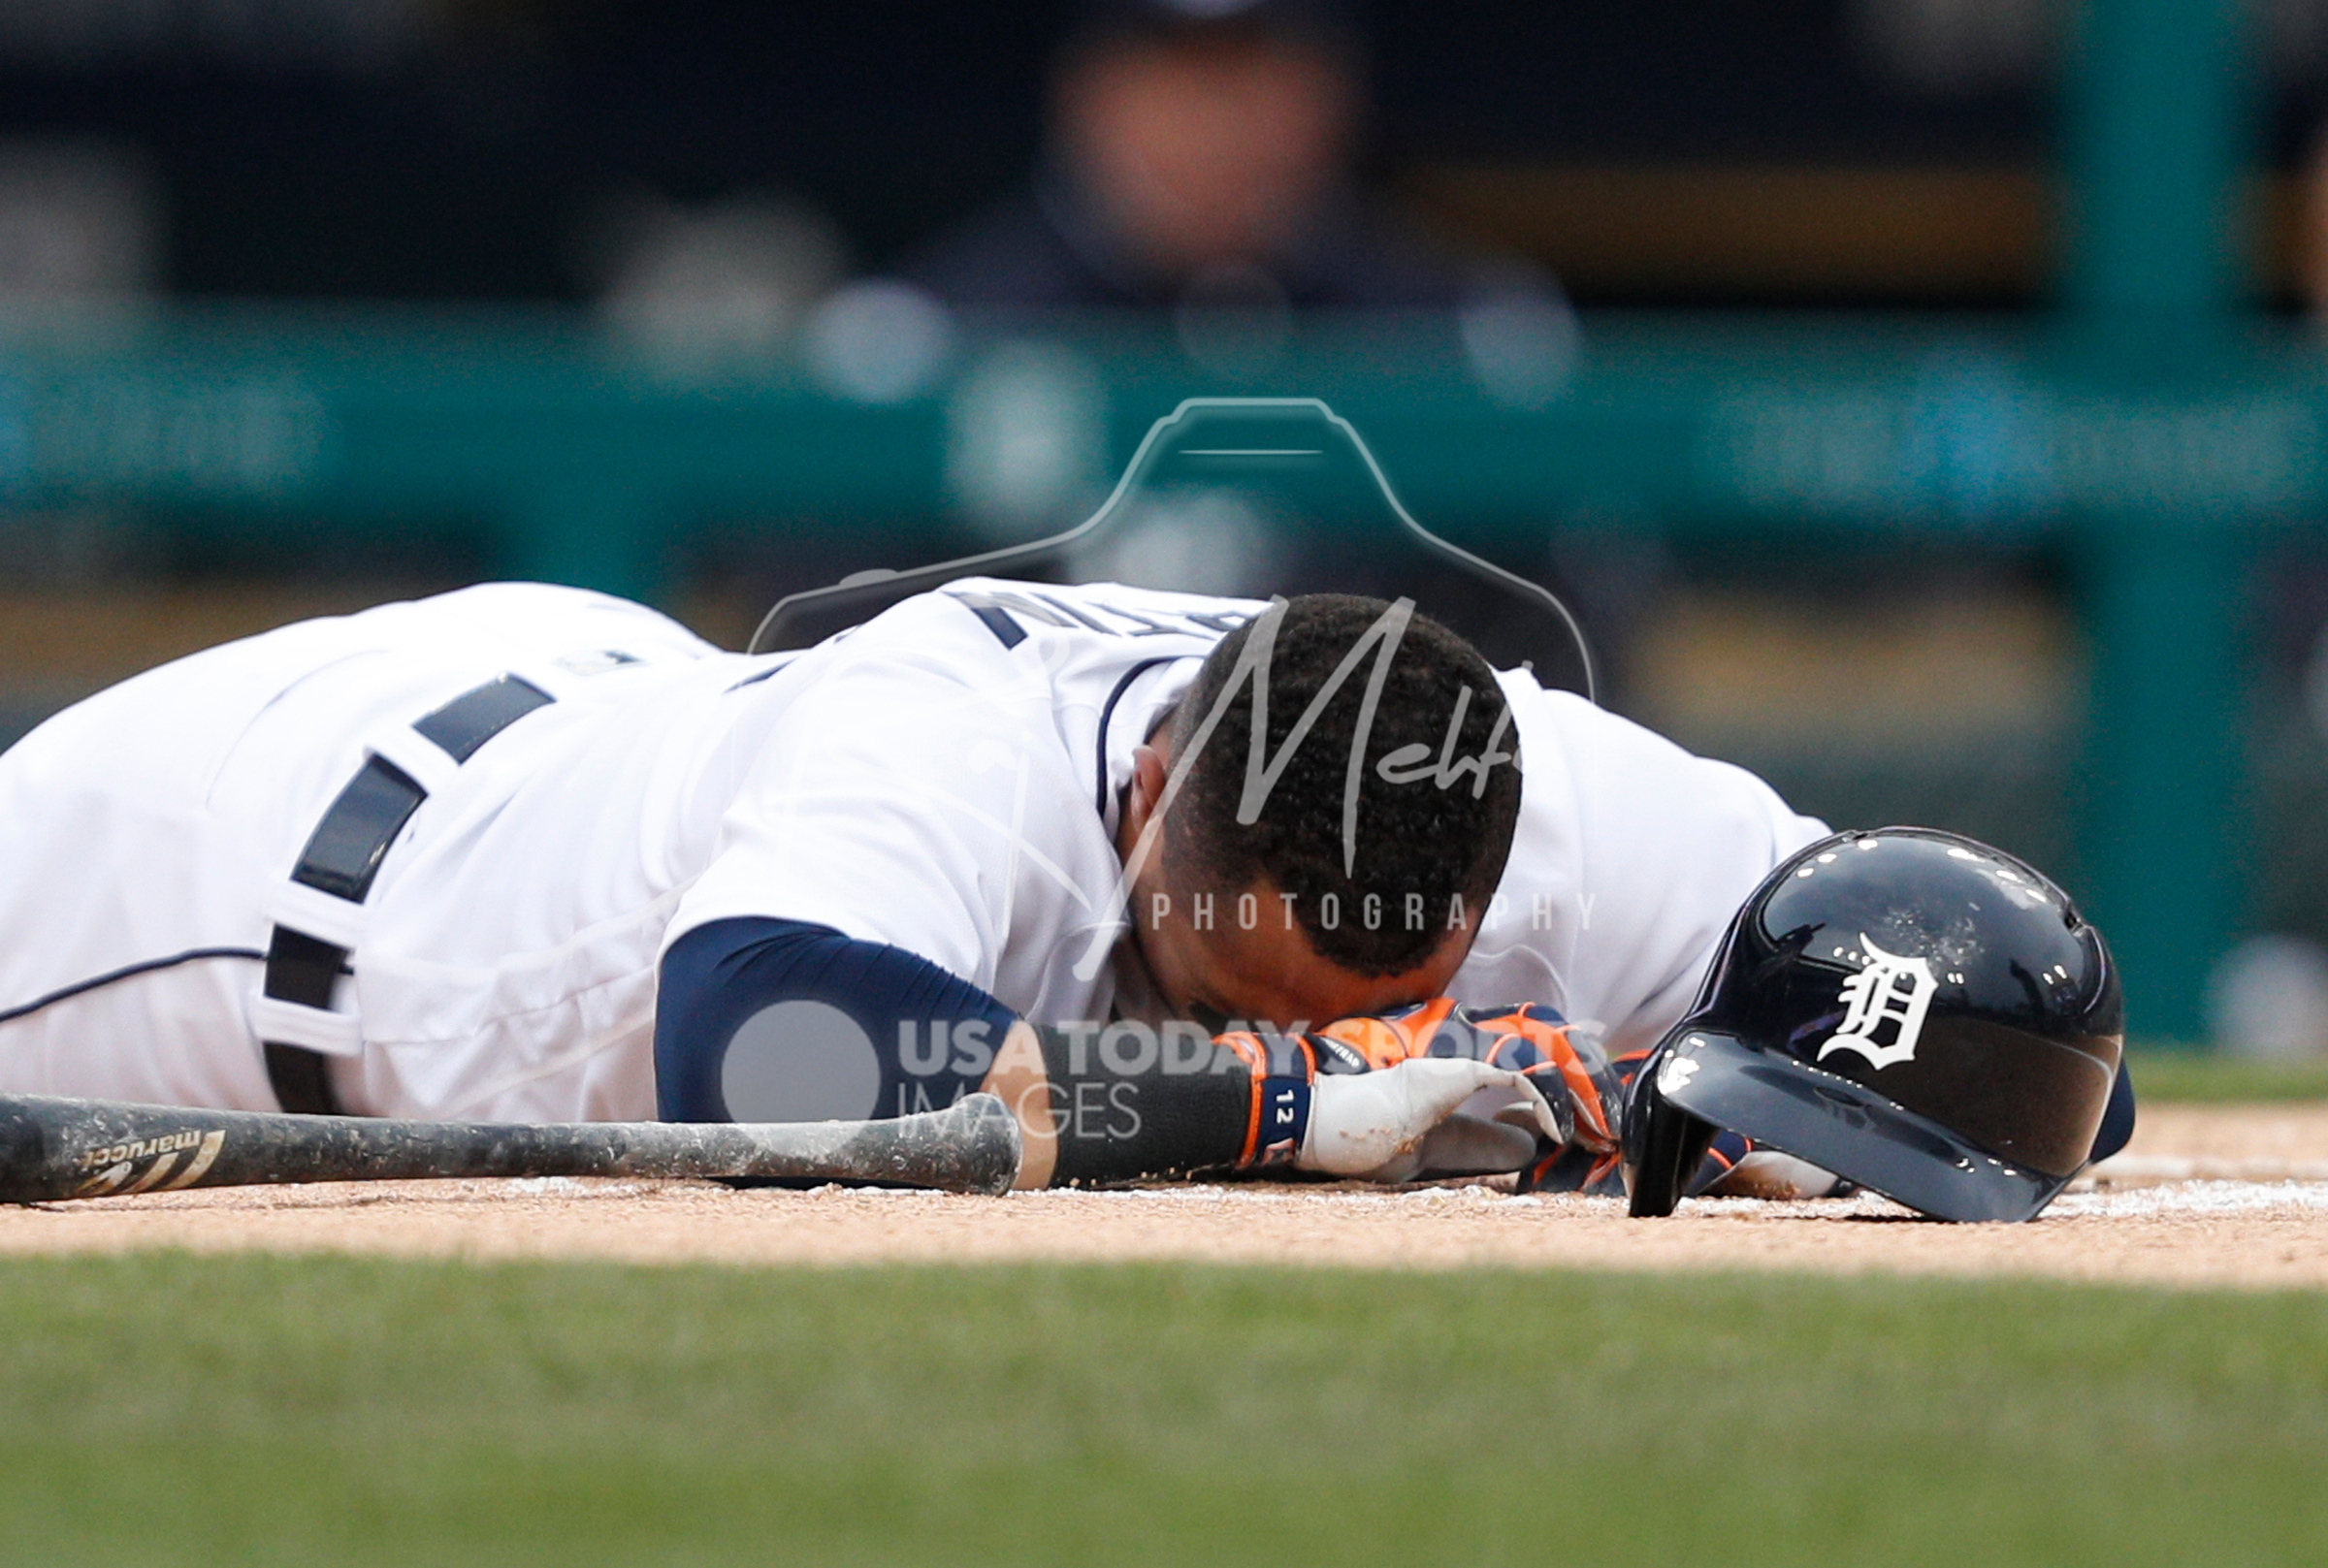 Apr 13, 2018; Detroit, MI, USA; Detroit Tigers center fielder Leonys Martin (12) goes down after an injury during the first inning against the New York Yankees at Comerica Park. Mandatory Credit: Raj Mehta-USA TODAY Sports